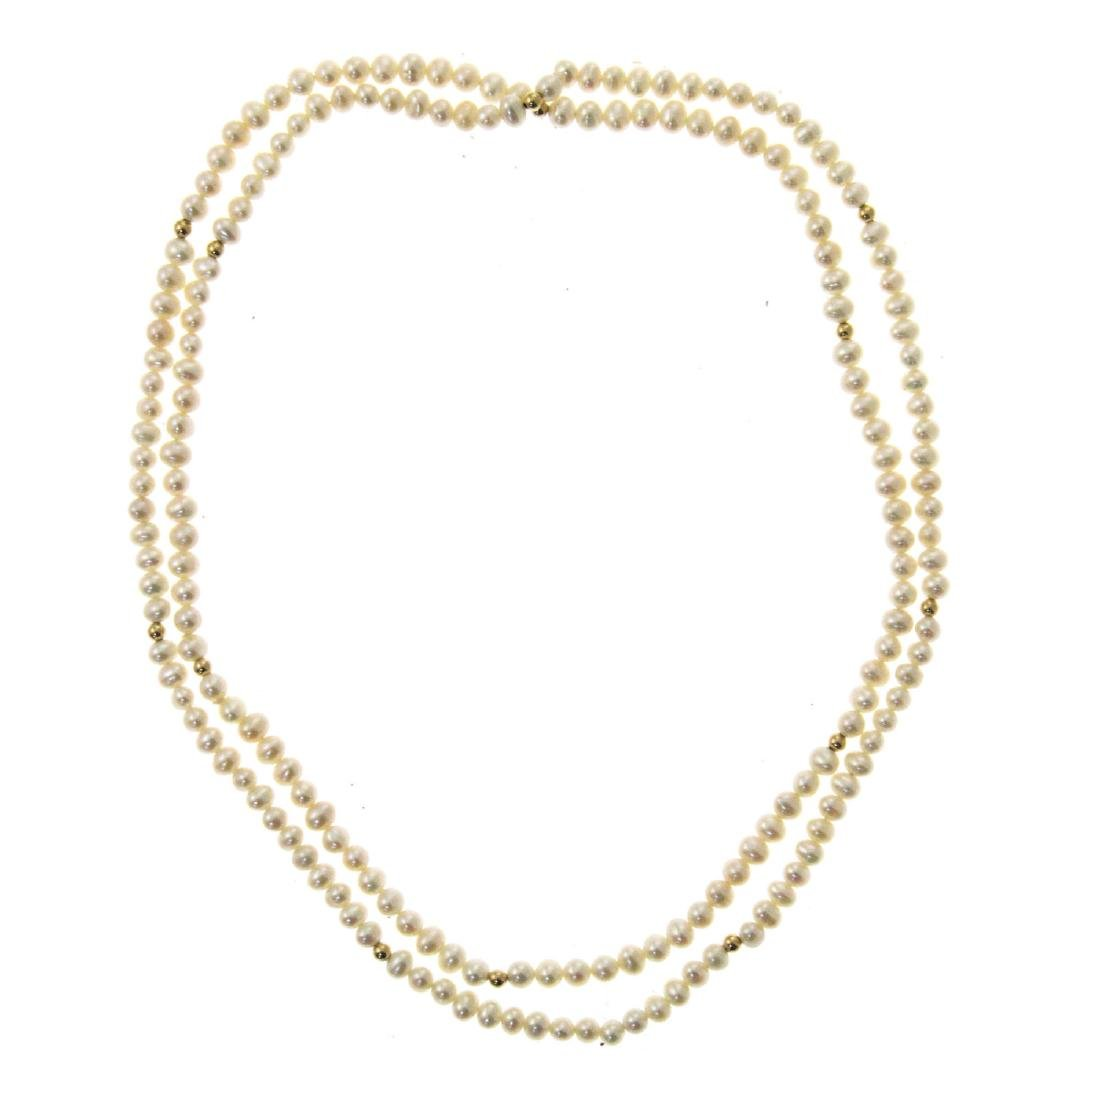 Pearl and 14k Yellow Gold Necklace.